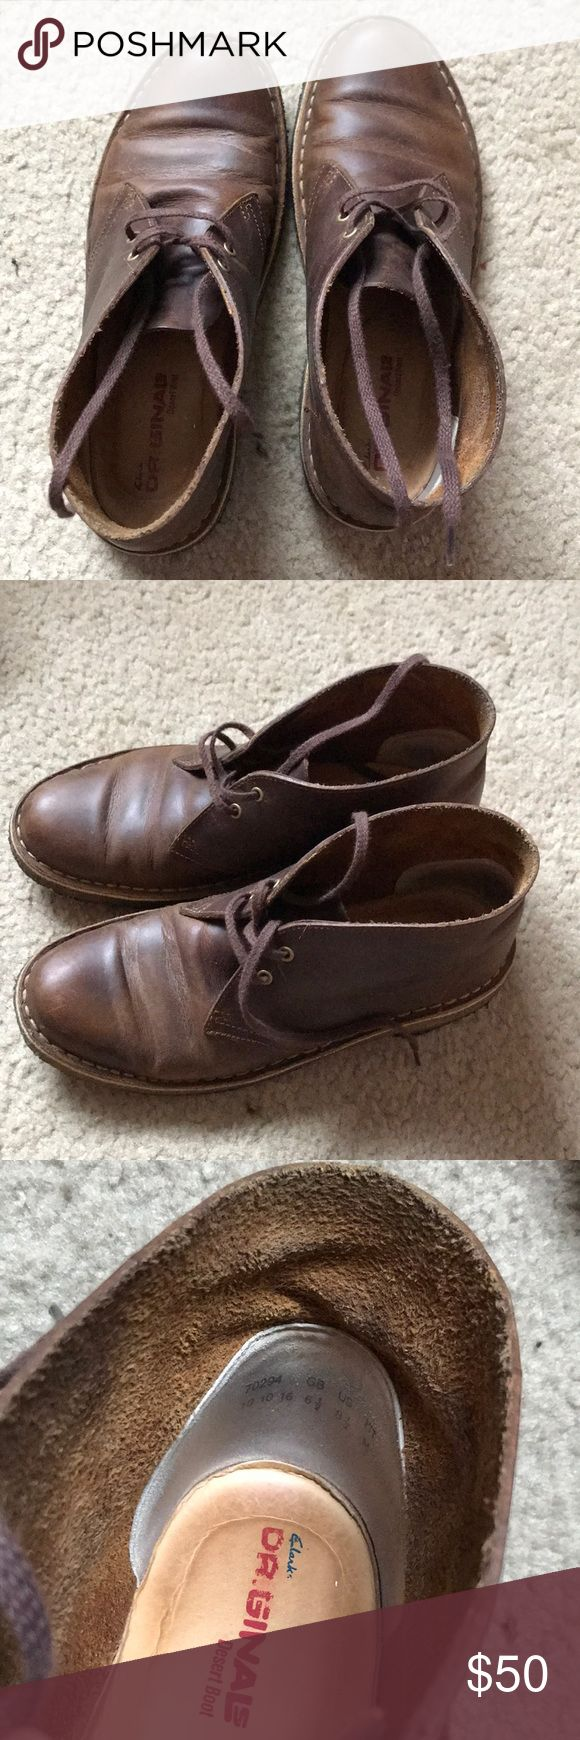 Clark's Beeswax Desert Boots Beeswax brown Clarks leather boot! Size 8.5 in good condition. Clarks Shoes Ankle Boots & Booties